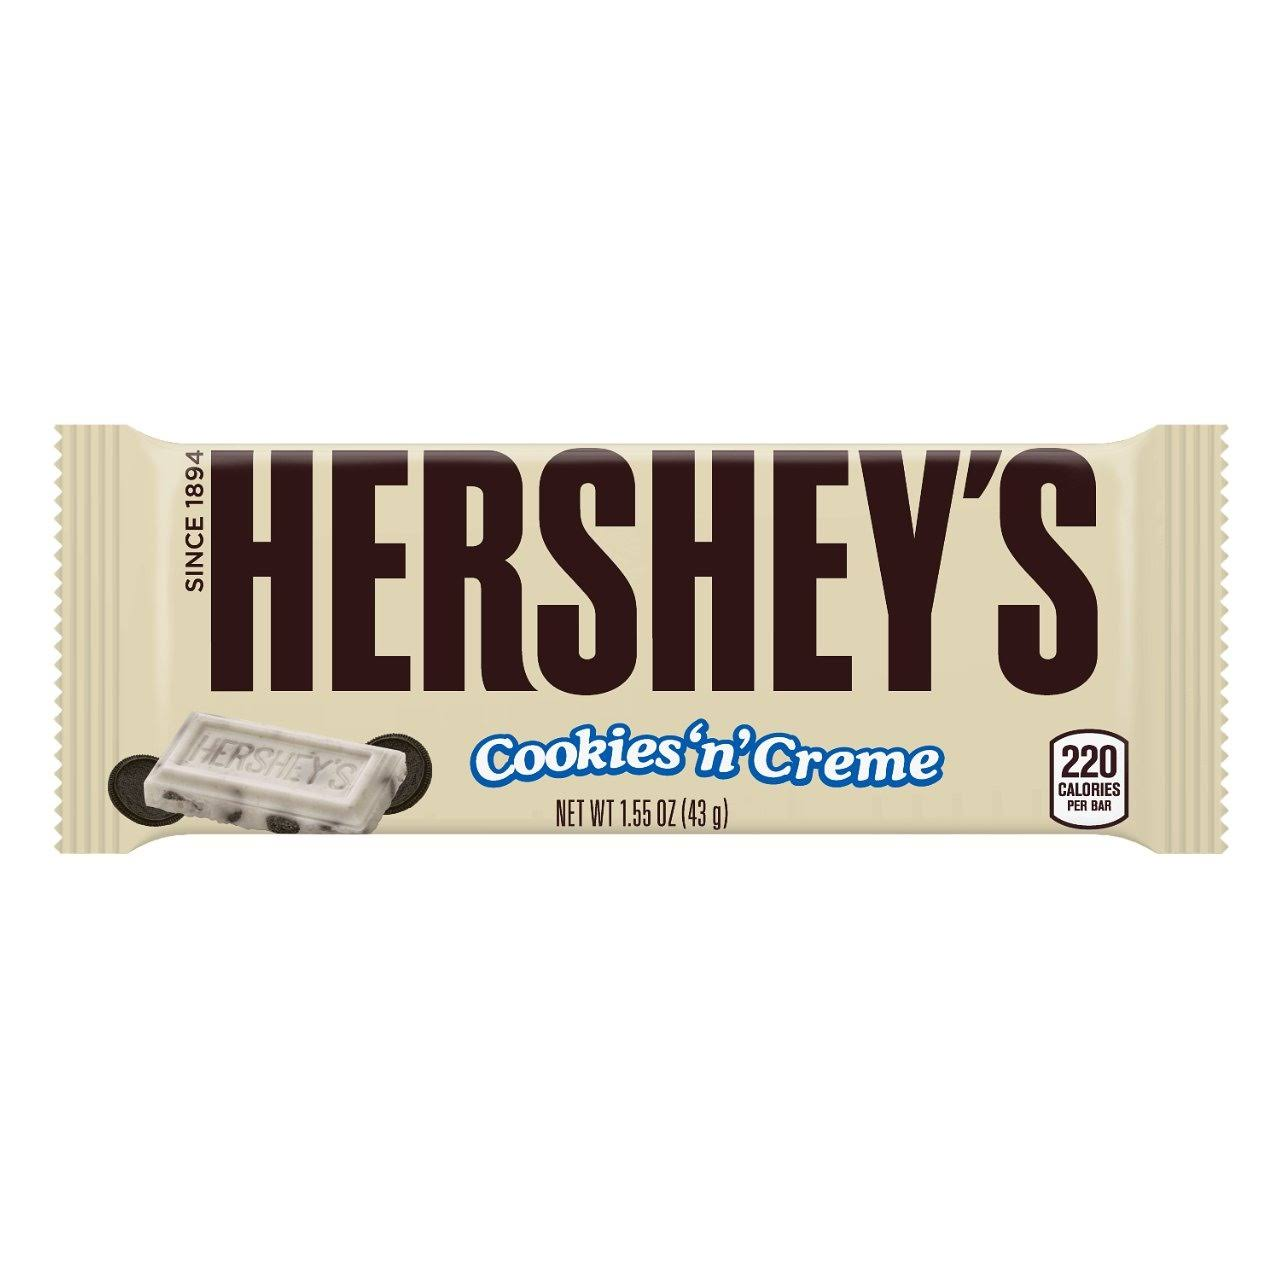 Hershey's Cookies N Creme Candy Bar - 43g